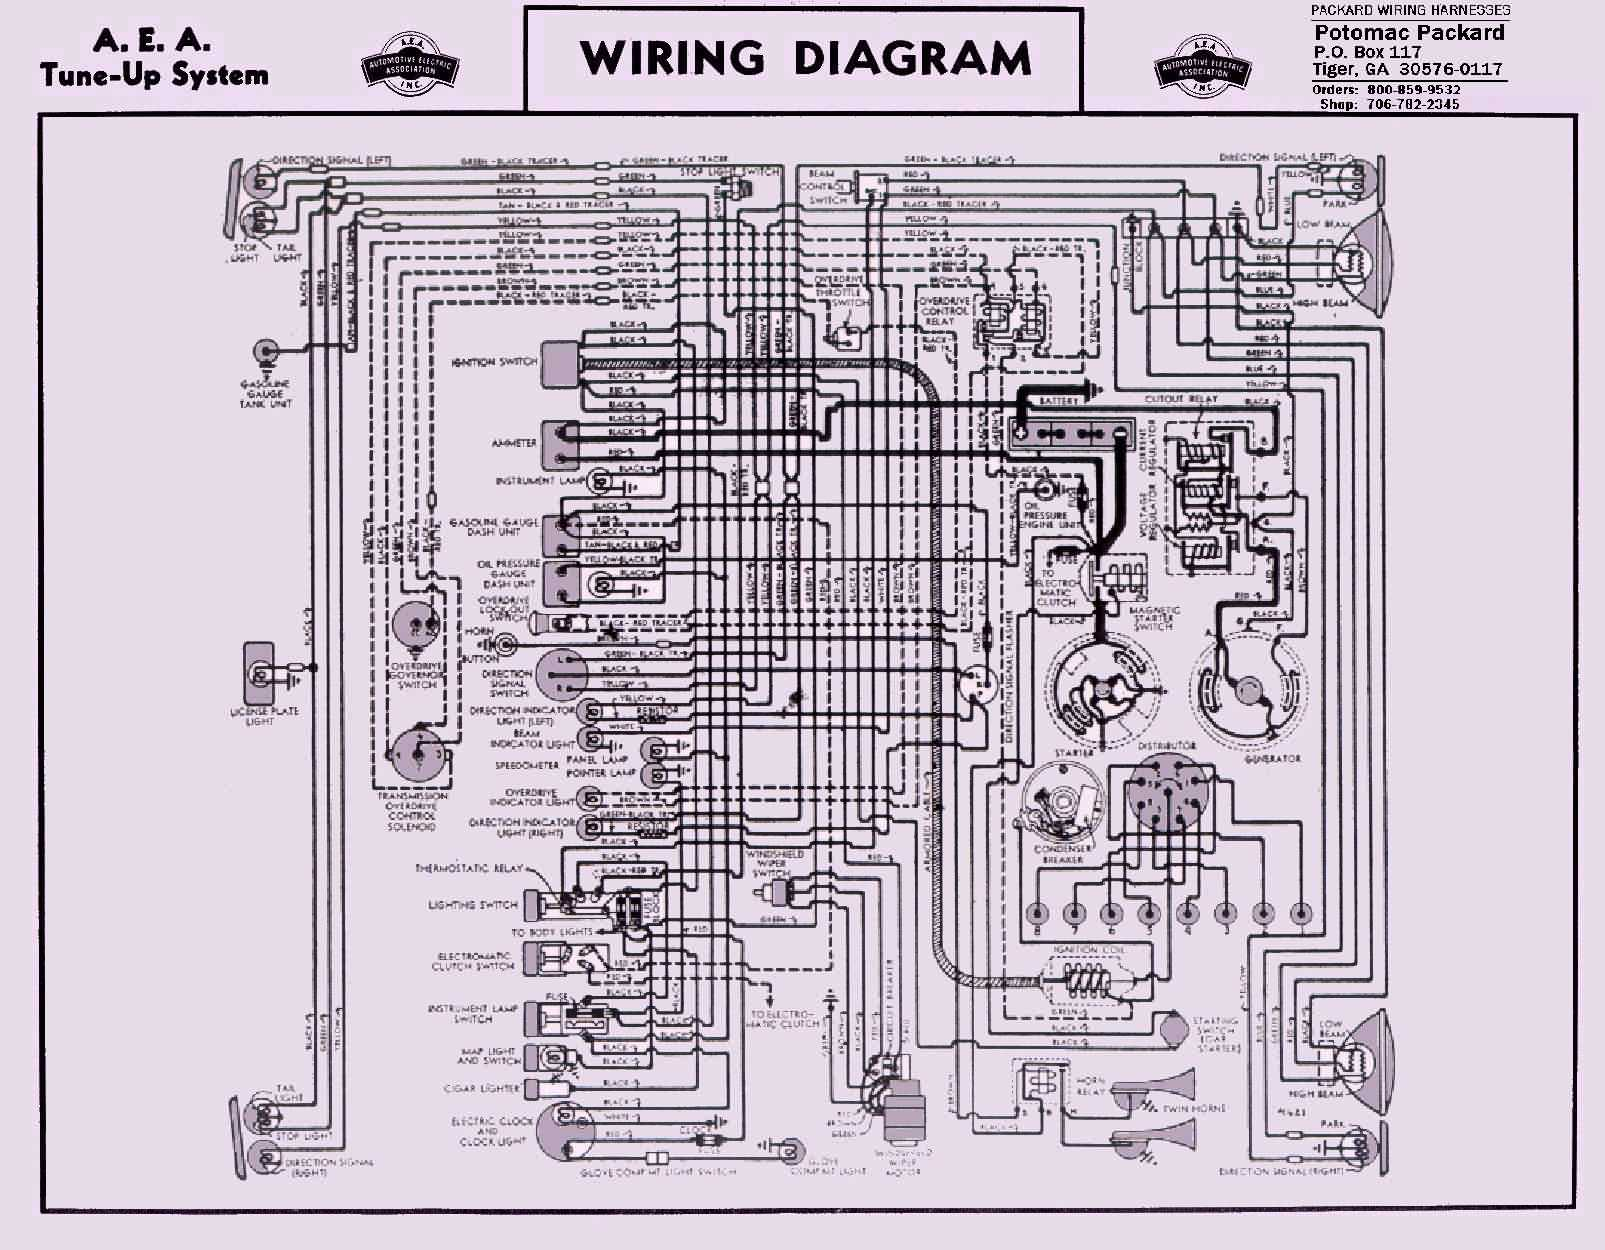 1947 Dodge Wiring Diagram Wire Data Schema 1974 Charger Packard Enthusiast Diagrams U2022 Rh Rasalibre Co 2009